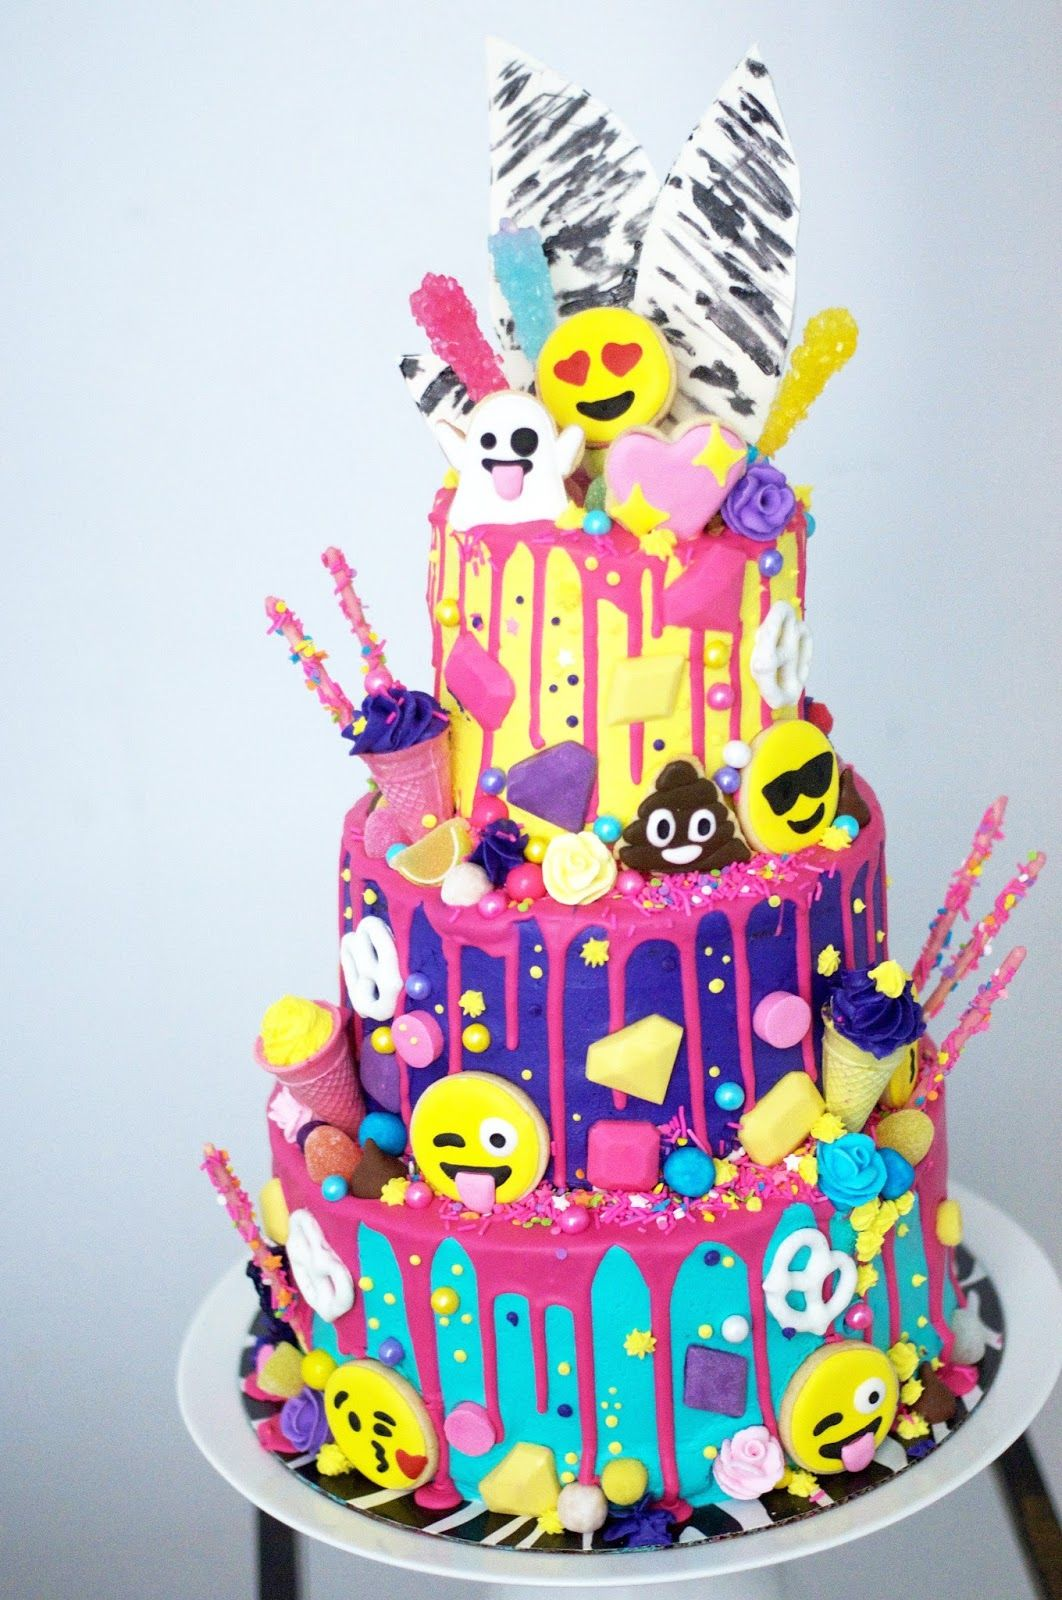 This Might Be My Favorite Build A Cake To Date The Incredible Lynzie At Love By Asked Me Make Three Tiered Giant Compl